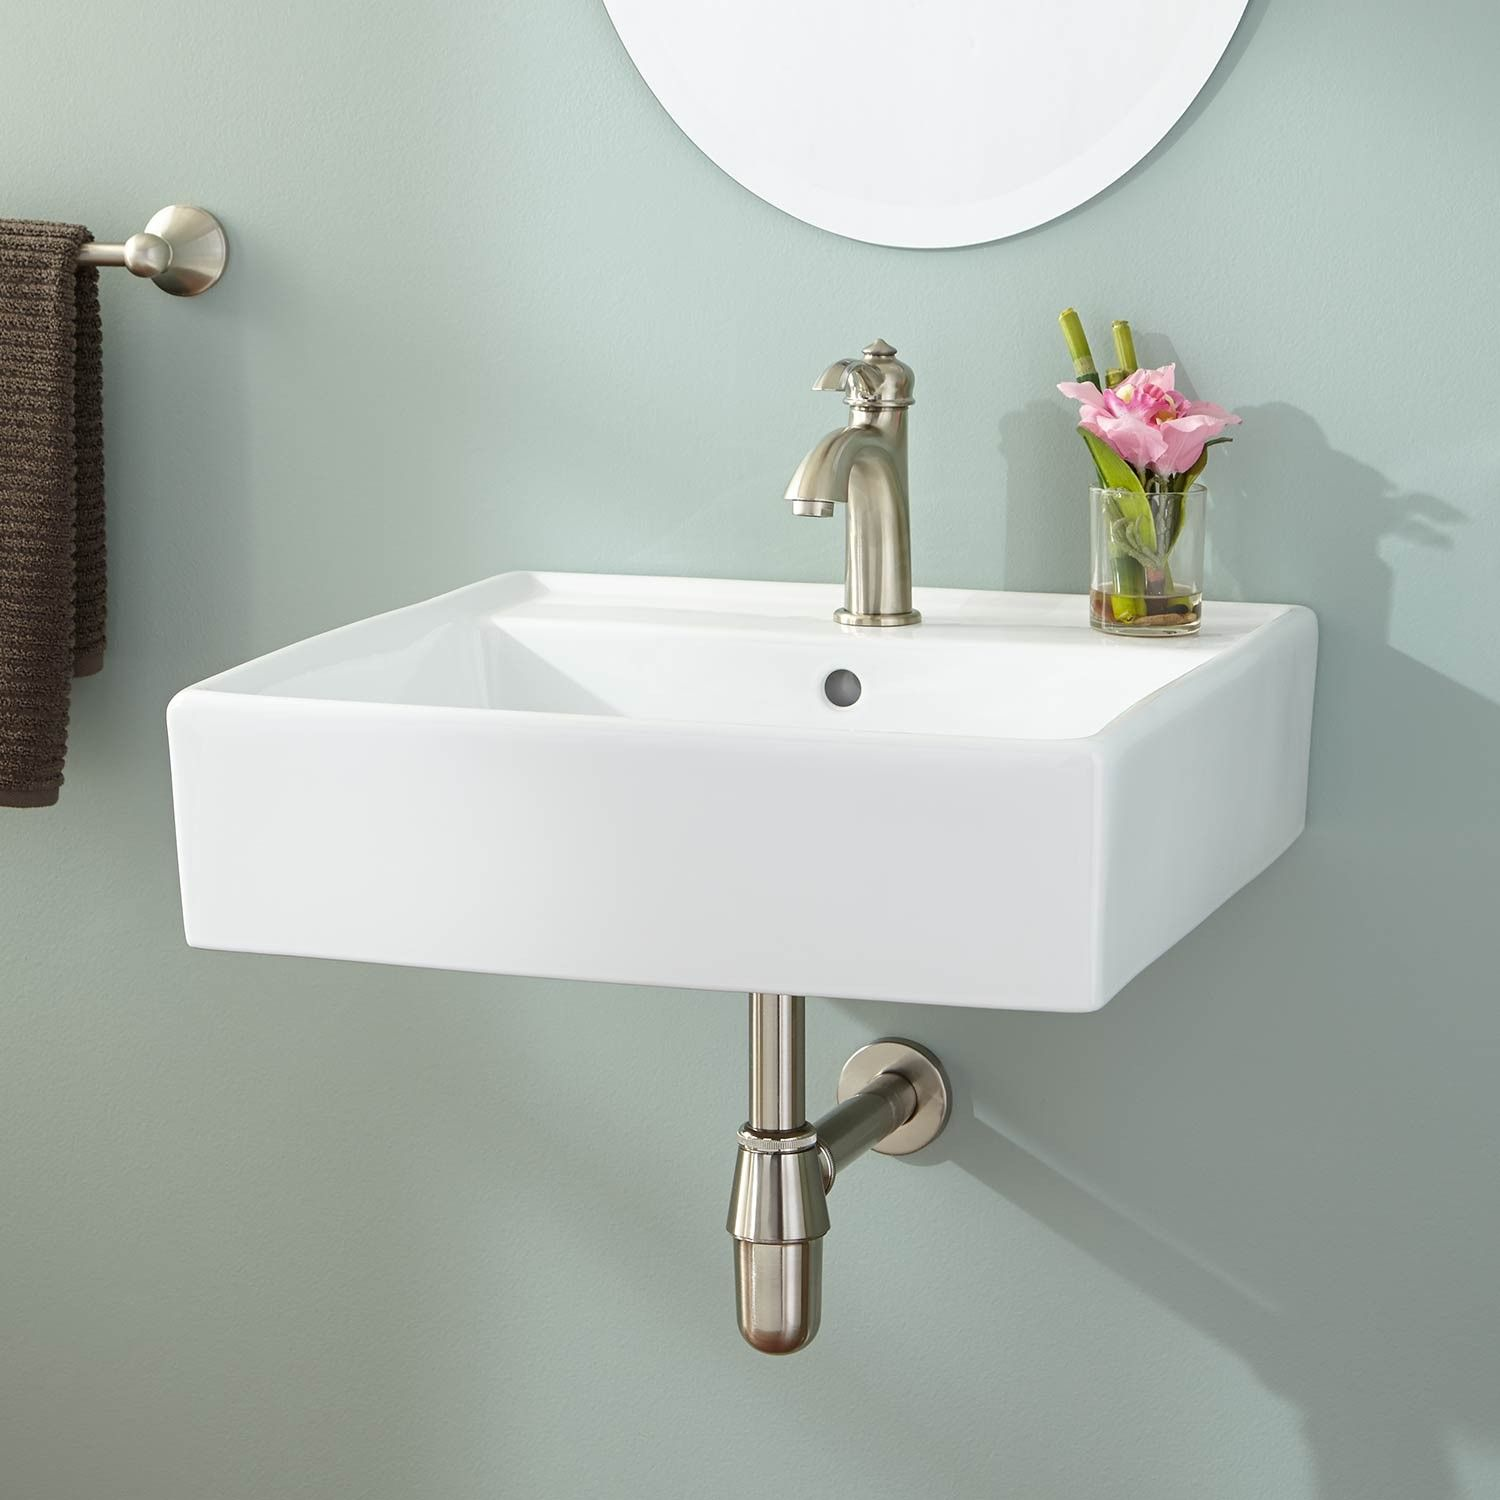 Chelsey Wall Mount Bathroom Sink   Wall Mount Sinks   Bathroom Sinks    Bathroom